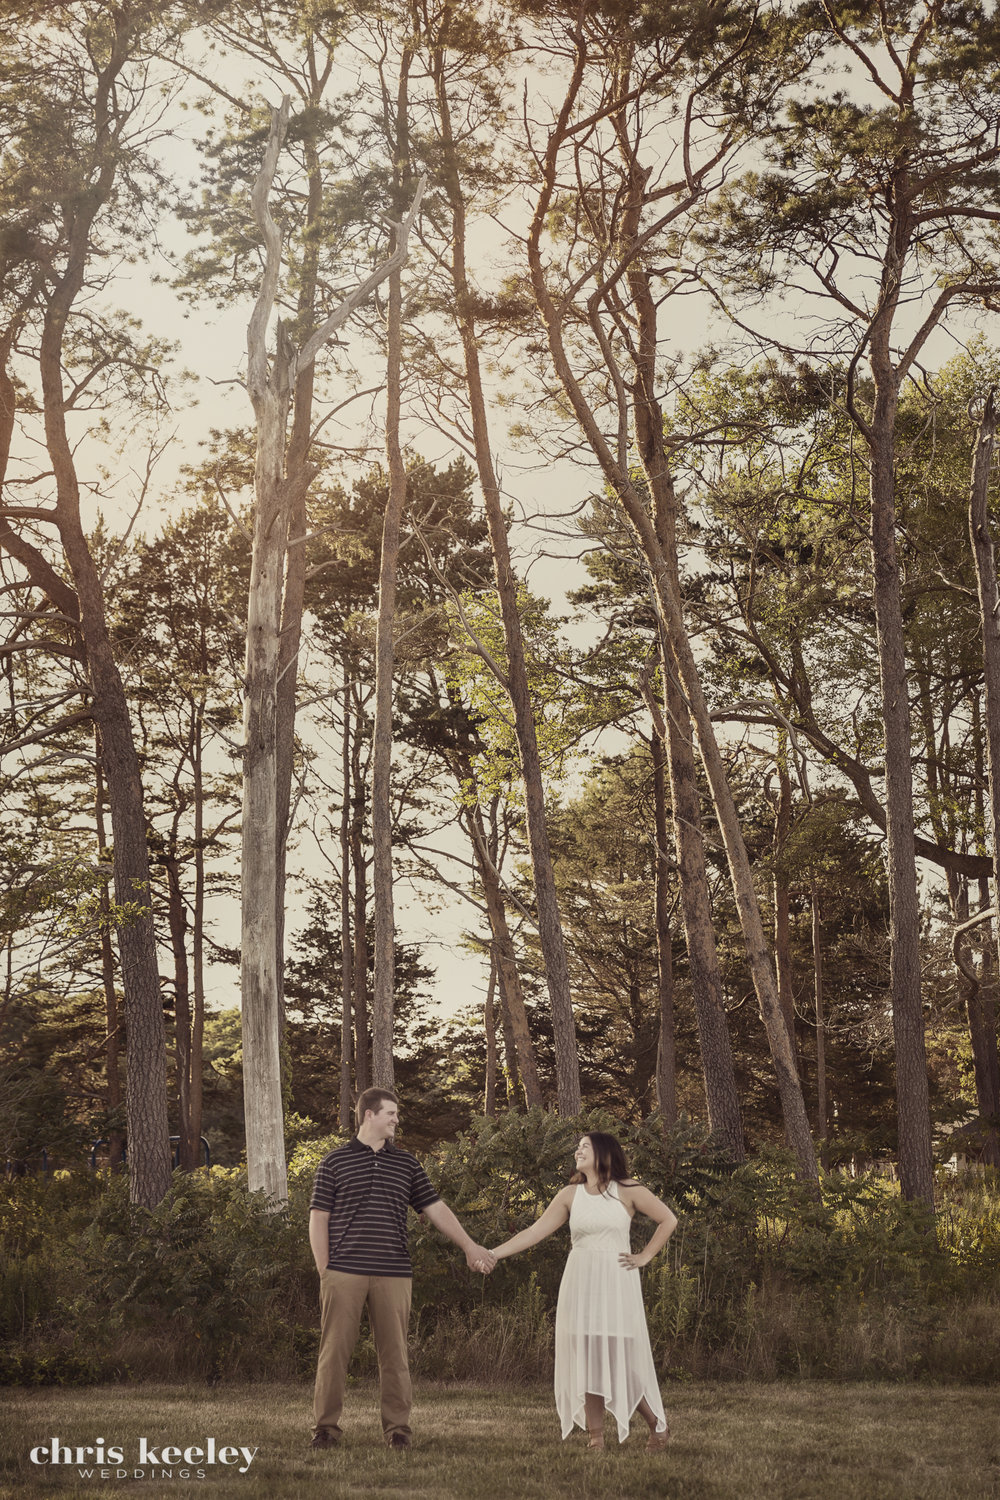 15-engagement-wedding-pictures-rye-new-hampshire-chris-keeley-weddings.jpg